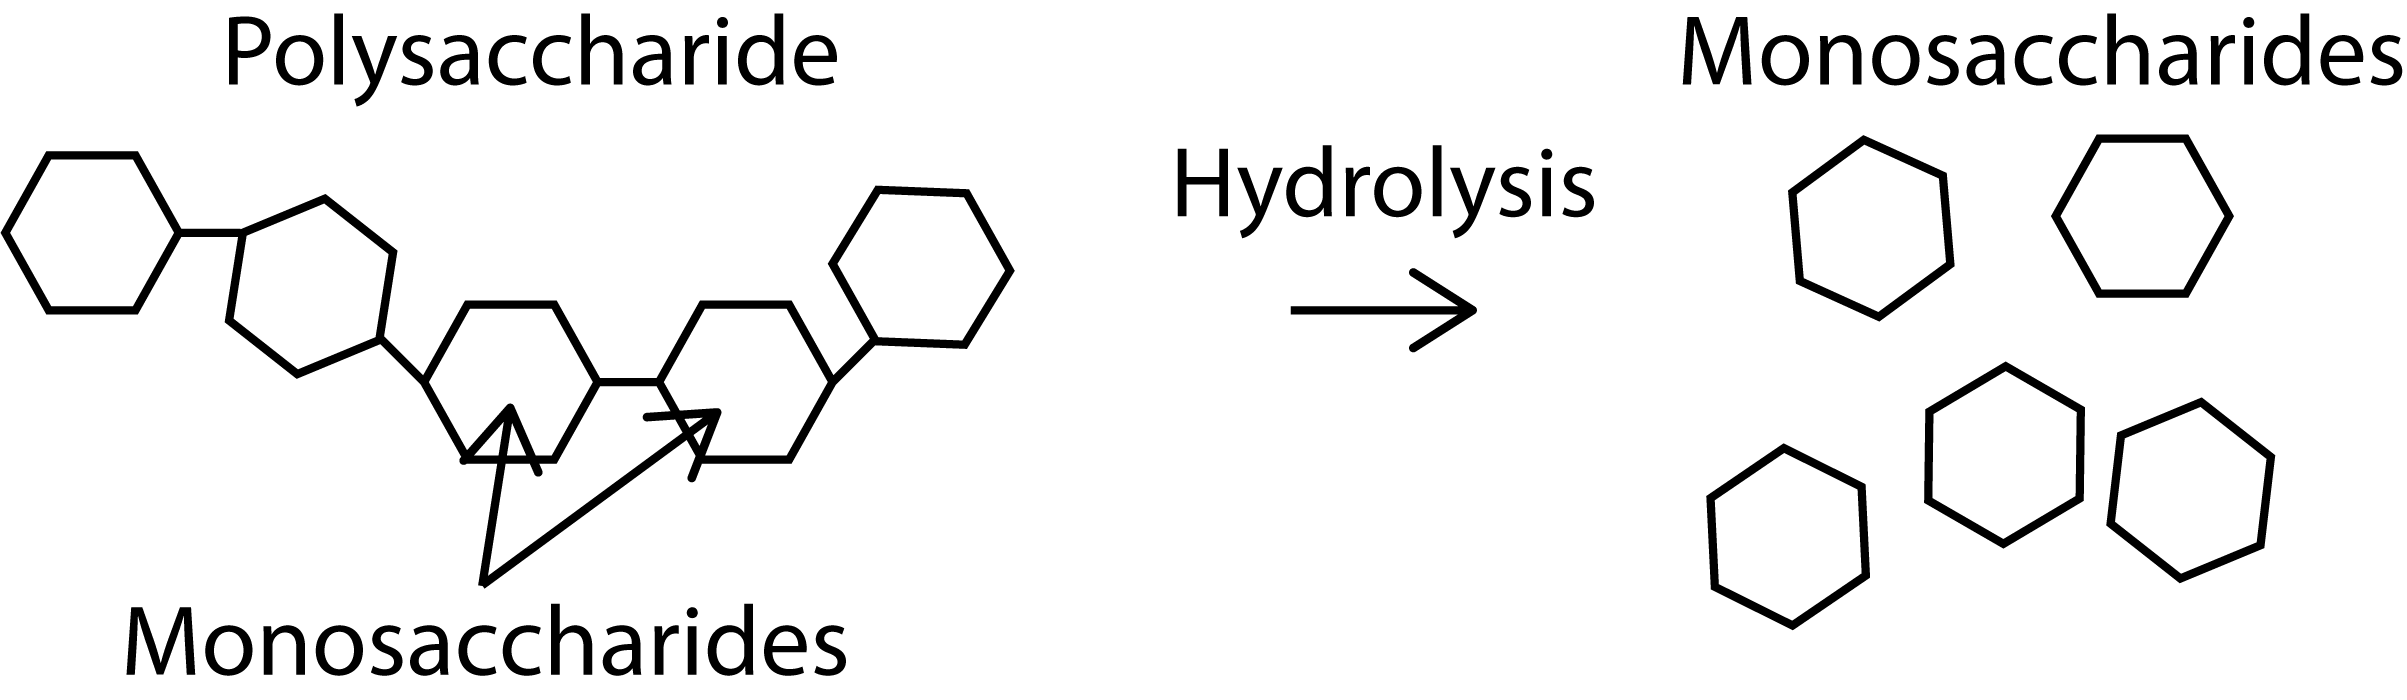 What are Polysaccharides